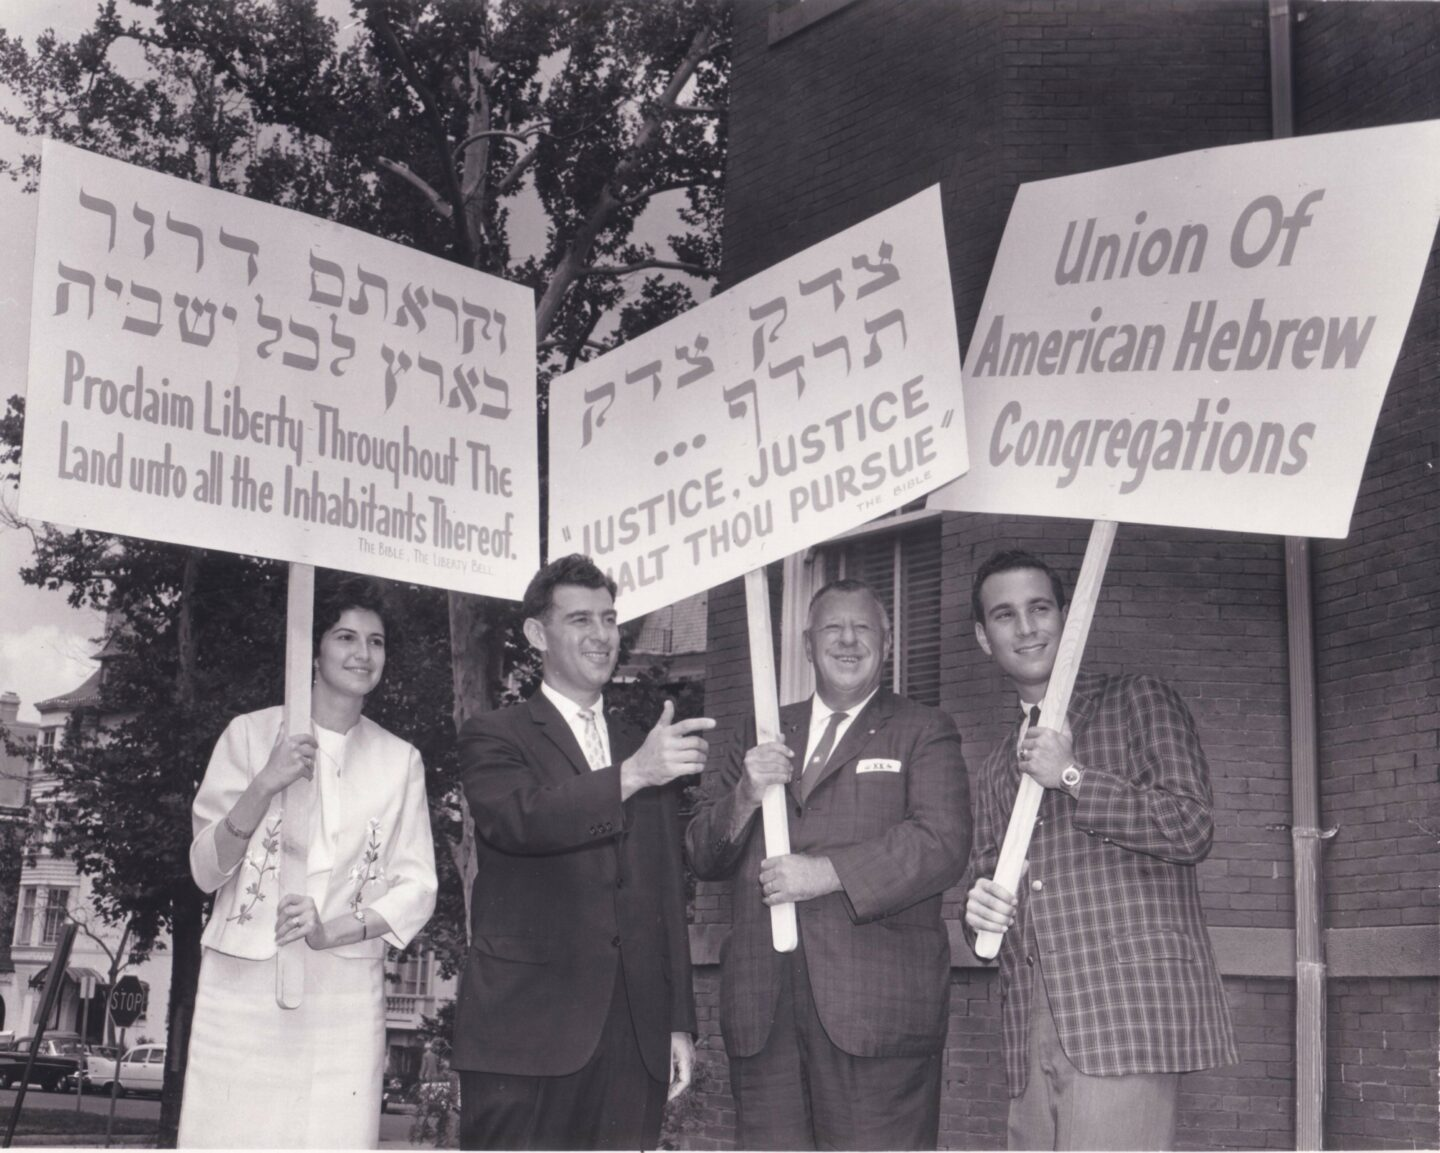 "<p>Jew­ish pro­test­ers at a&nbsp;<span class=""numbers"">1963</span> march for Black civ­il rights (via <a href=""http://blogs.rj.org/rac/files/2014/04/63-civilrt.smarch.jpg""><span class=""caps"">RJ​</span>.org</a>)</p>"